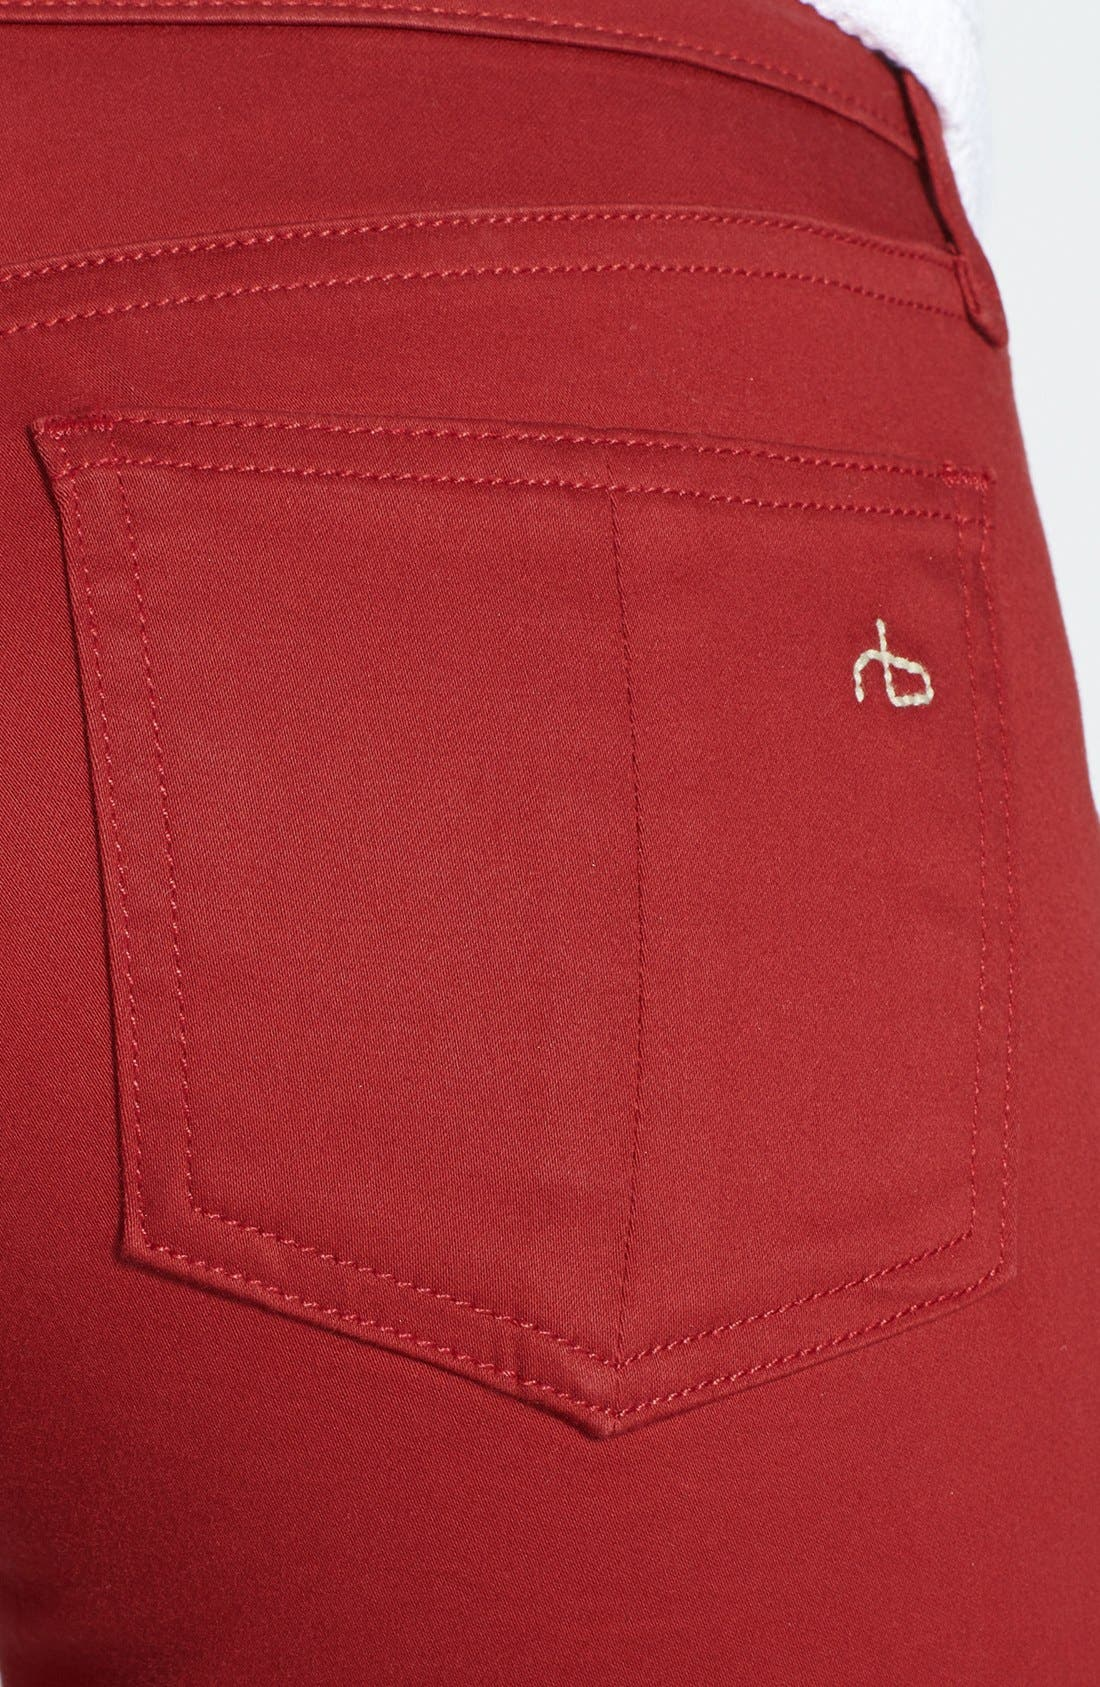 Alternate Image 3  - rag & bone/JEAN 'The Legging' Sateen Skinny Jeans (Red Sateen)